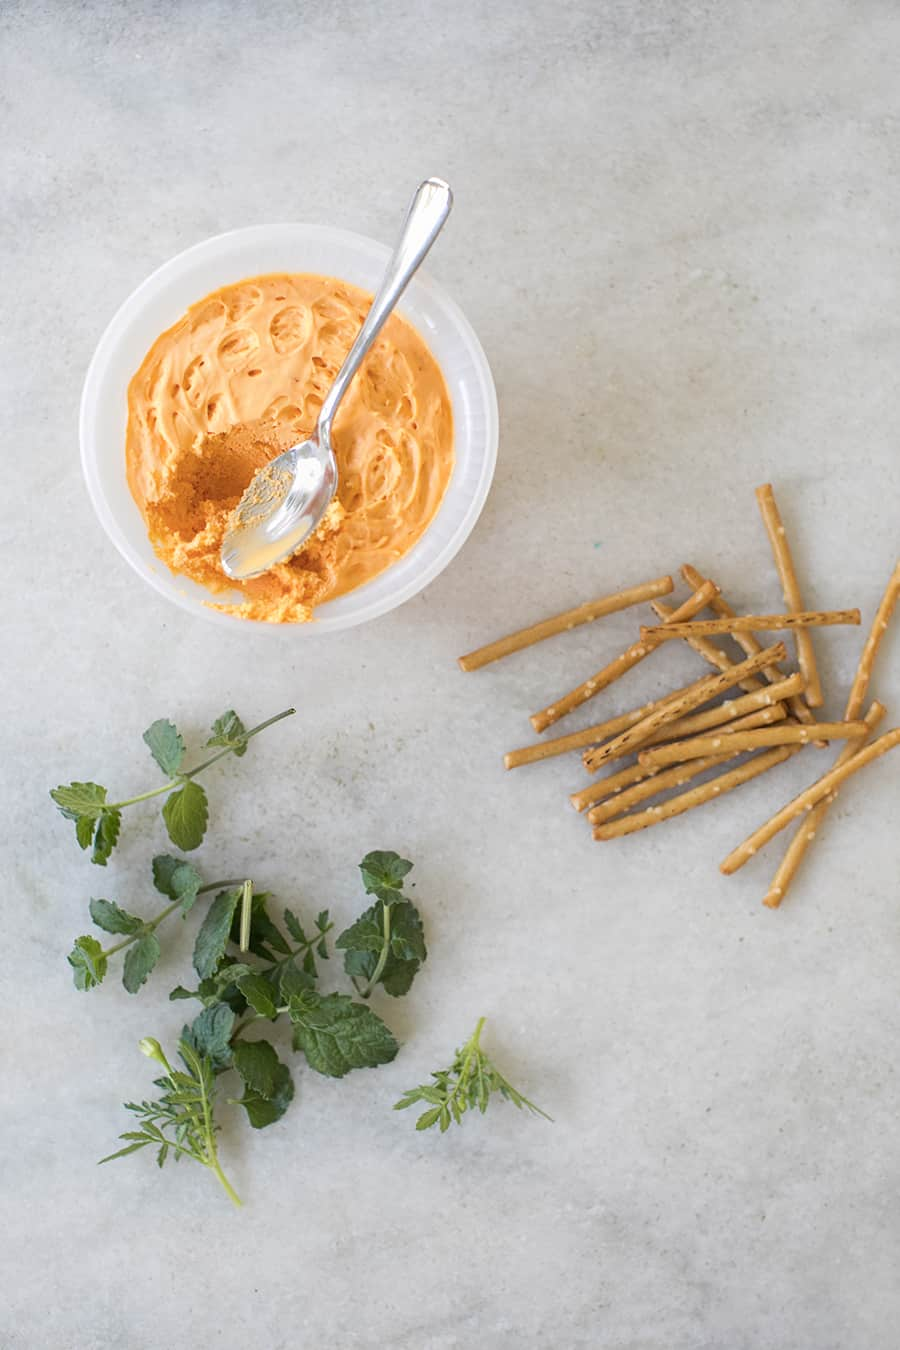 Pub cheese with pretzel sticks and herbs,